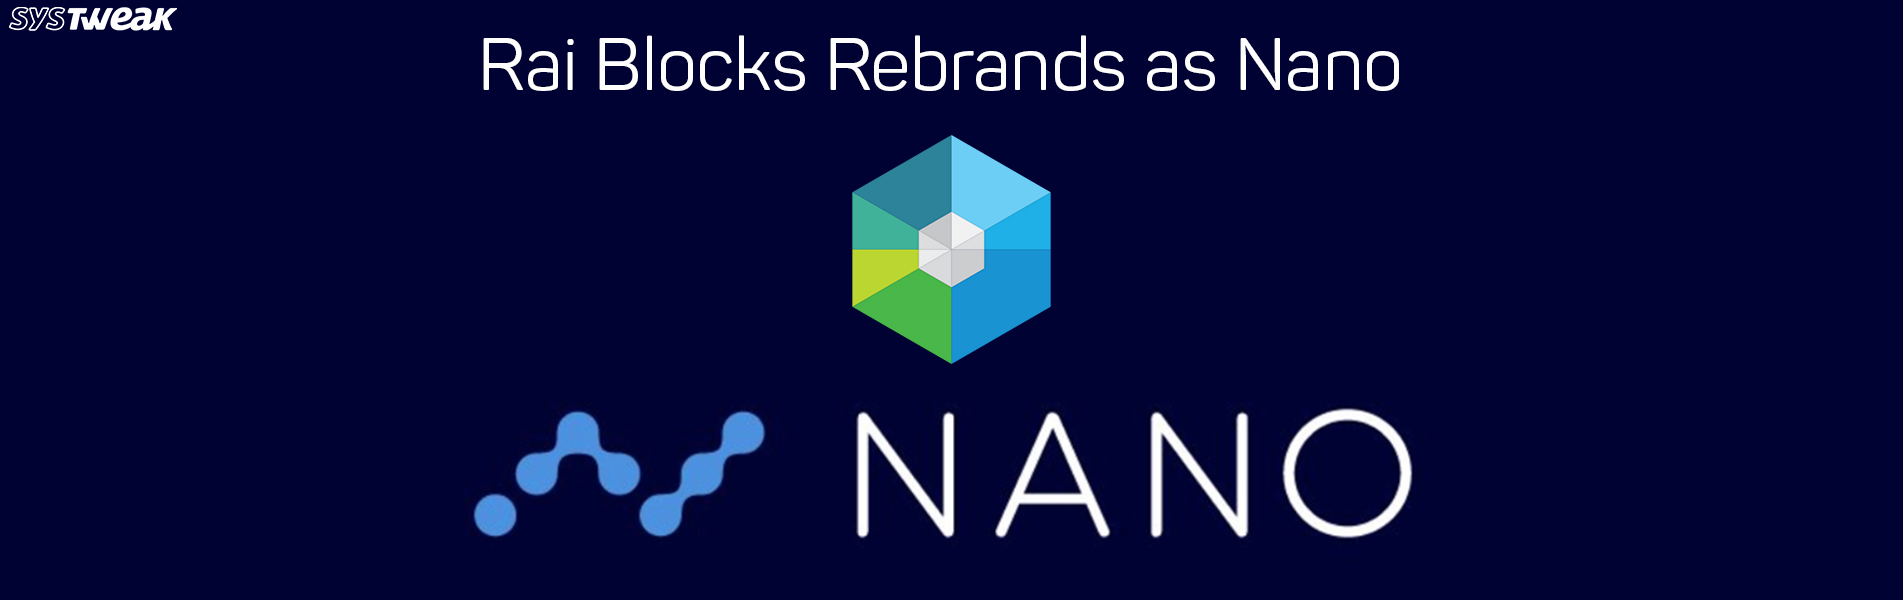 RAI Blocks Relaunches Itself as NANO